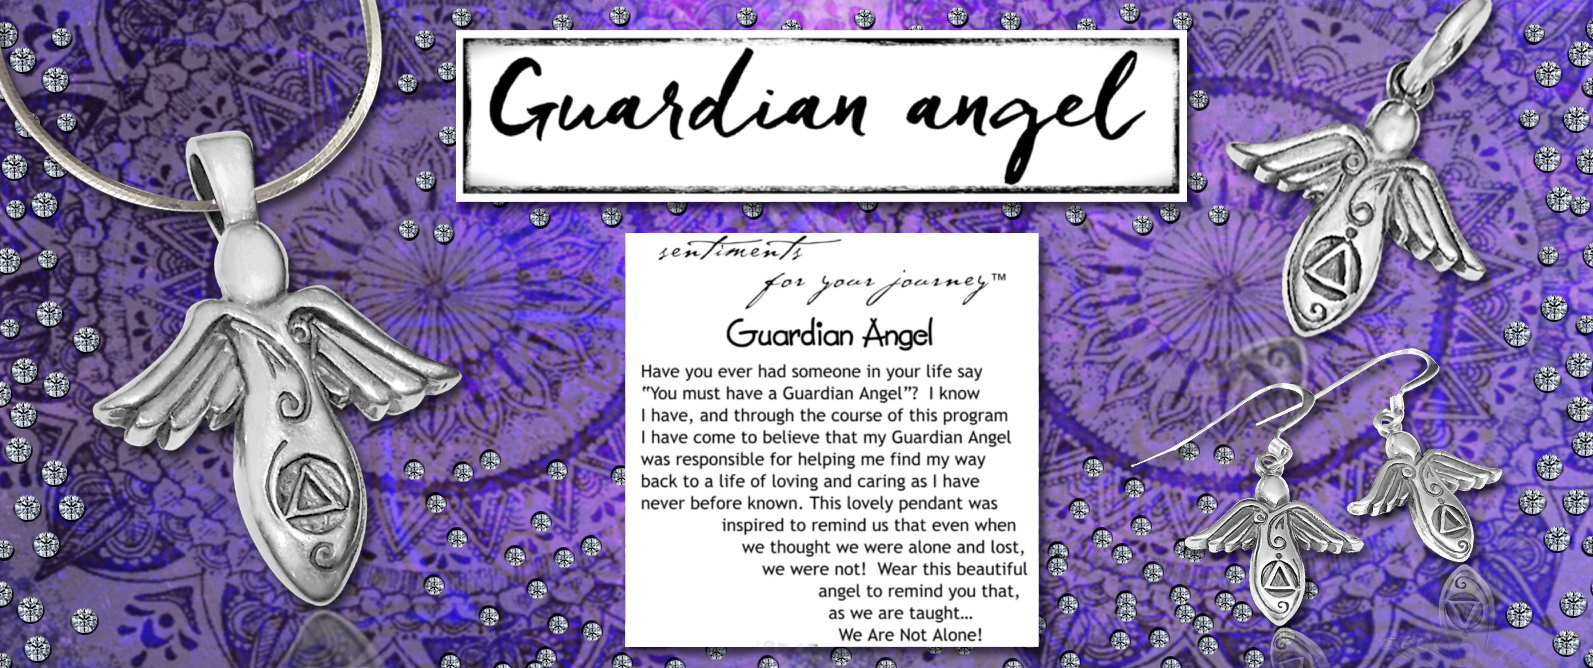 guardian-angel-category-banner.png